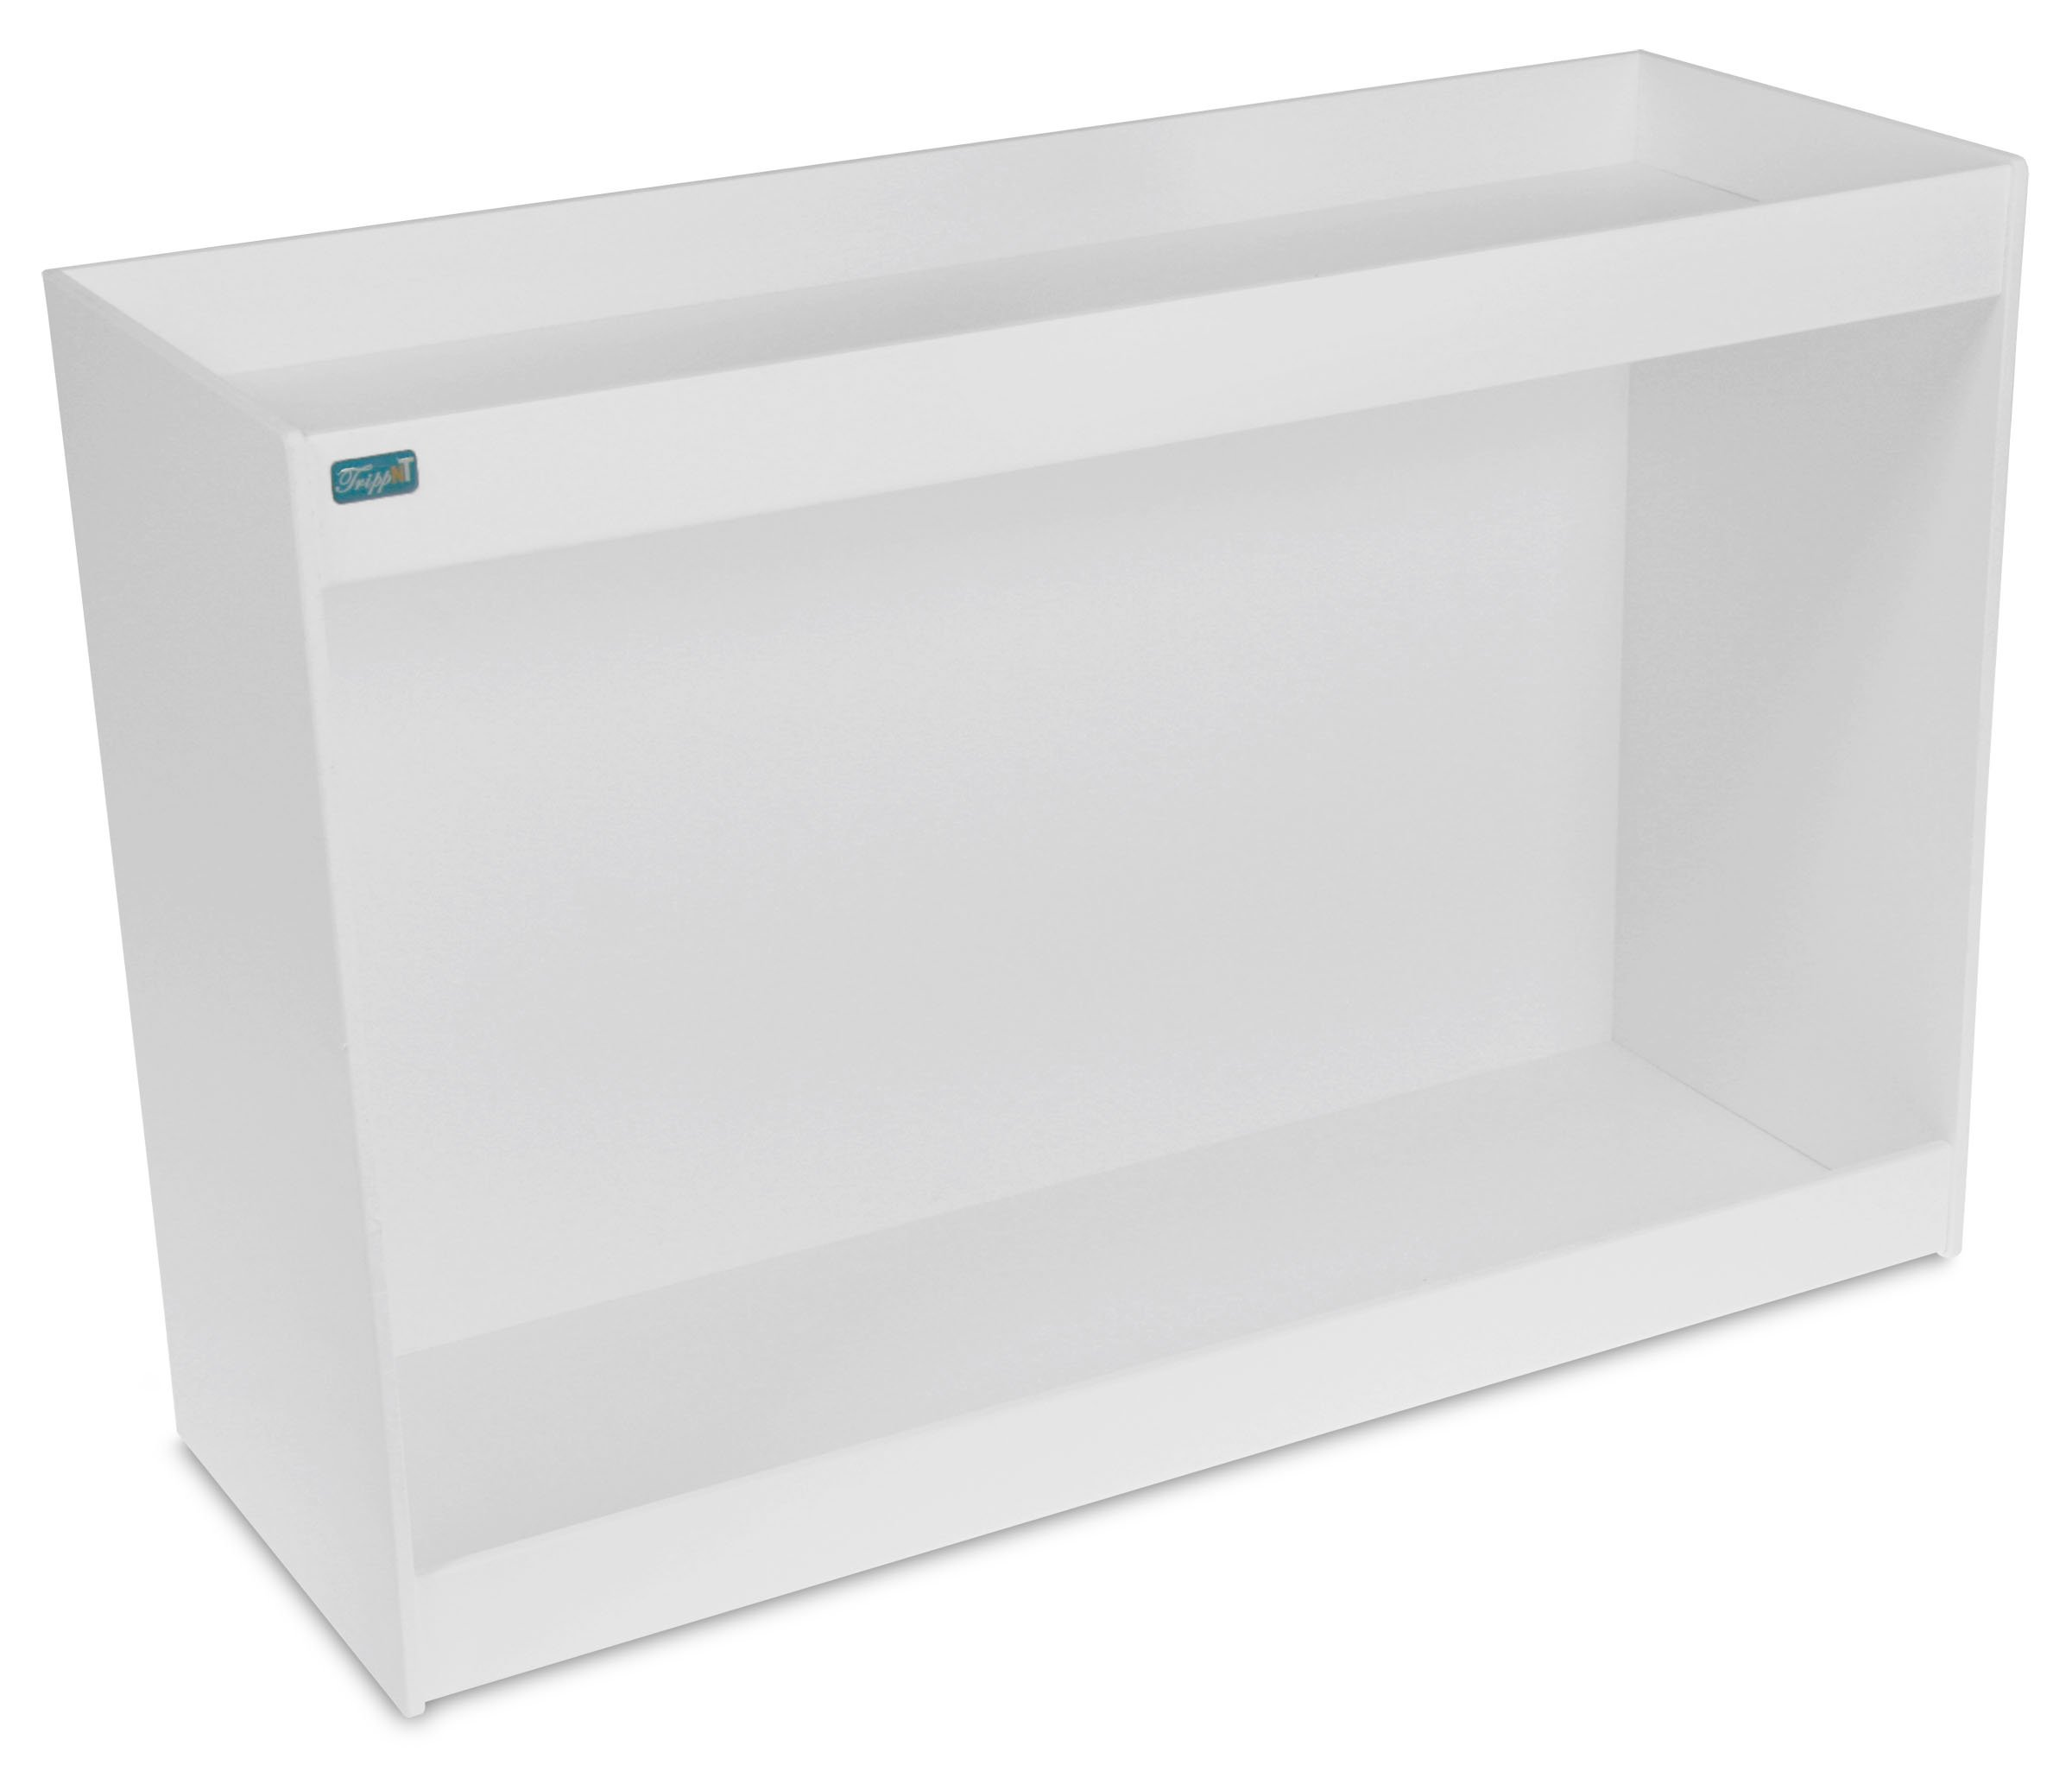 TrippNT 50178 PVC Straight Double Safety Shelves, 24'' Width x 16'' Height x 9'' Depth, White